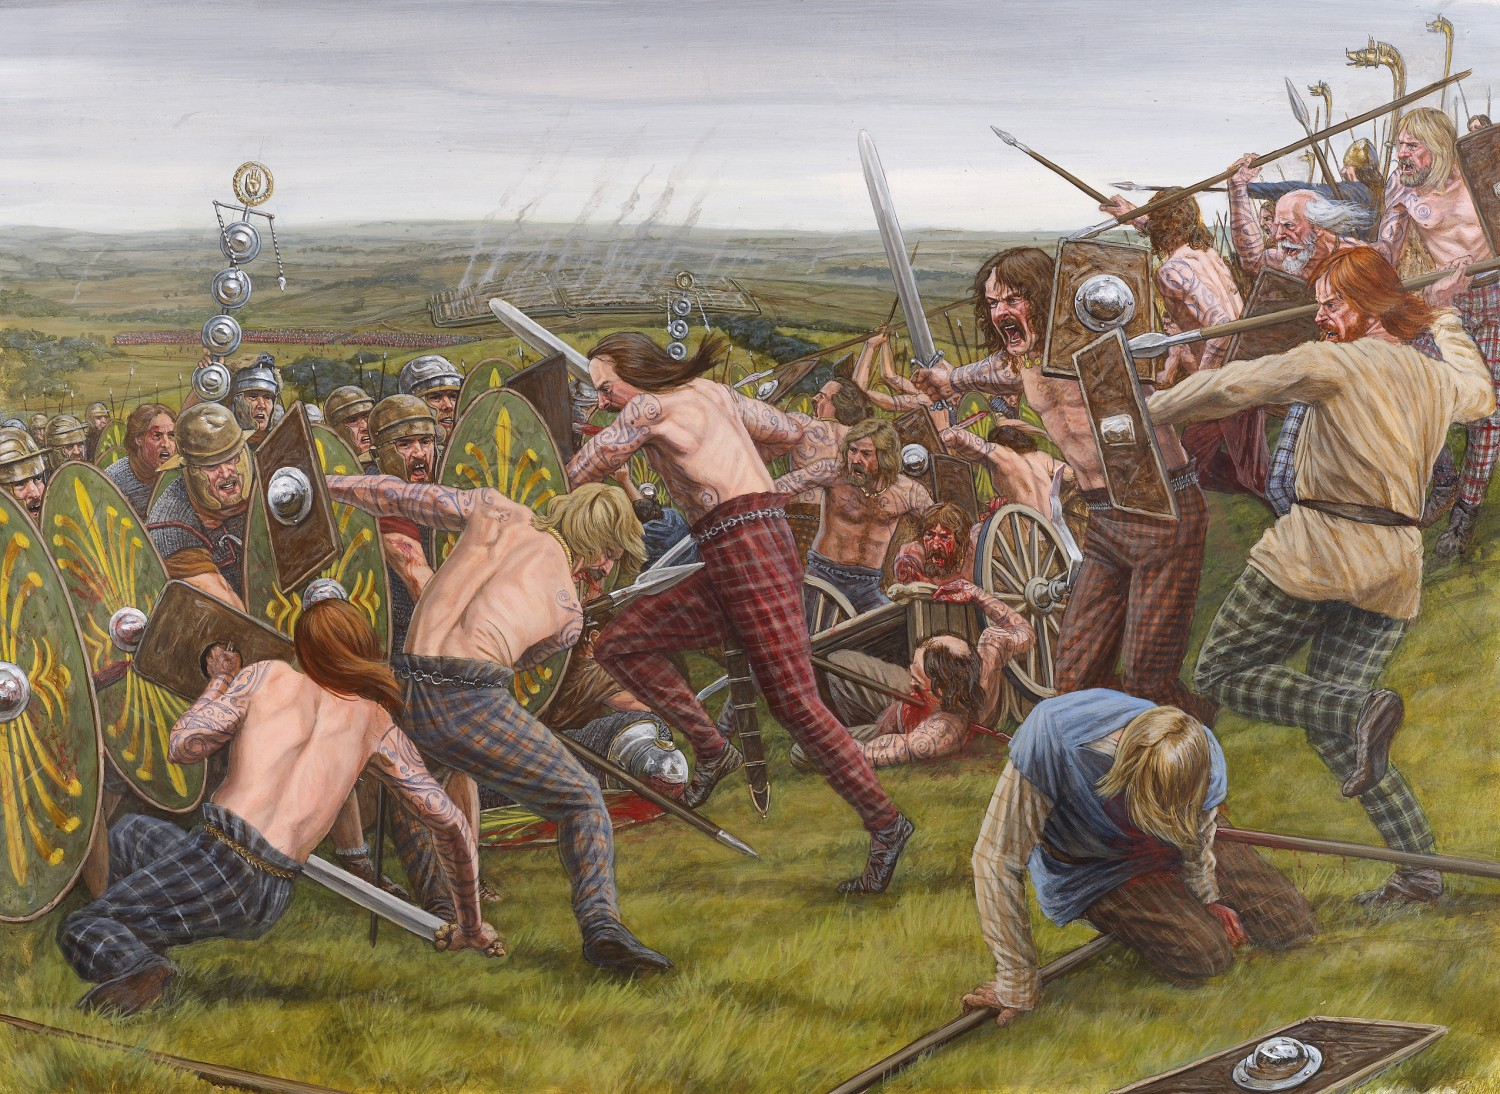 celtic rebellion Celtic religion, religious beliefs and practices of the ancient celts the celts, an ancient indo-european people, reached the apogee of their influence and territorial expansion during the 4th century bc, extending across the length of europe from britain to asia minor.